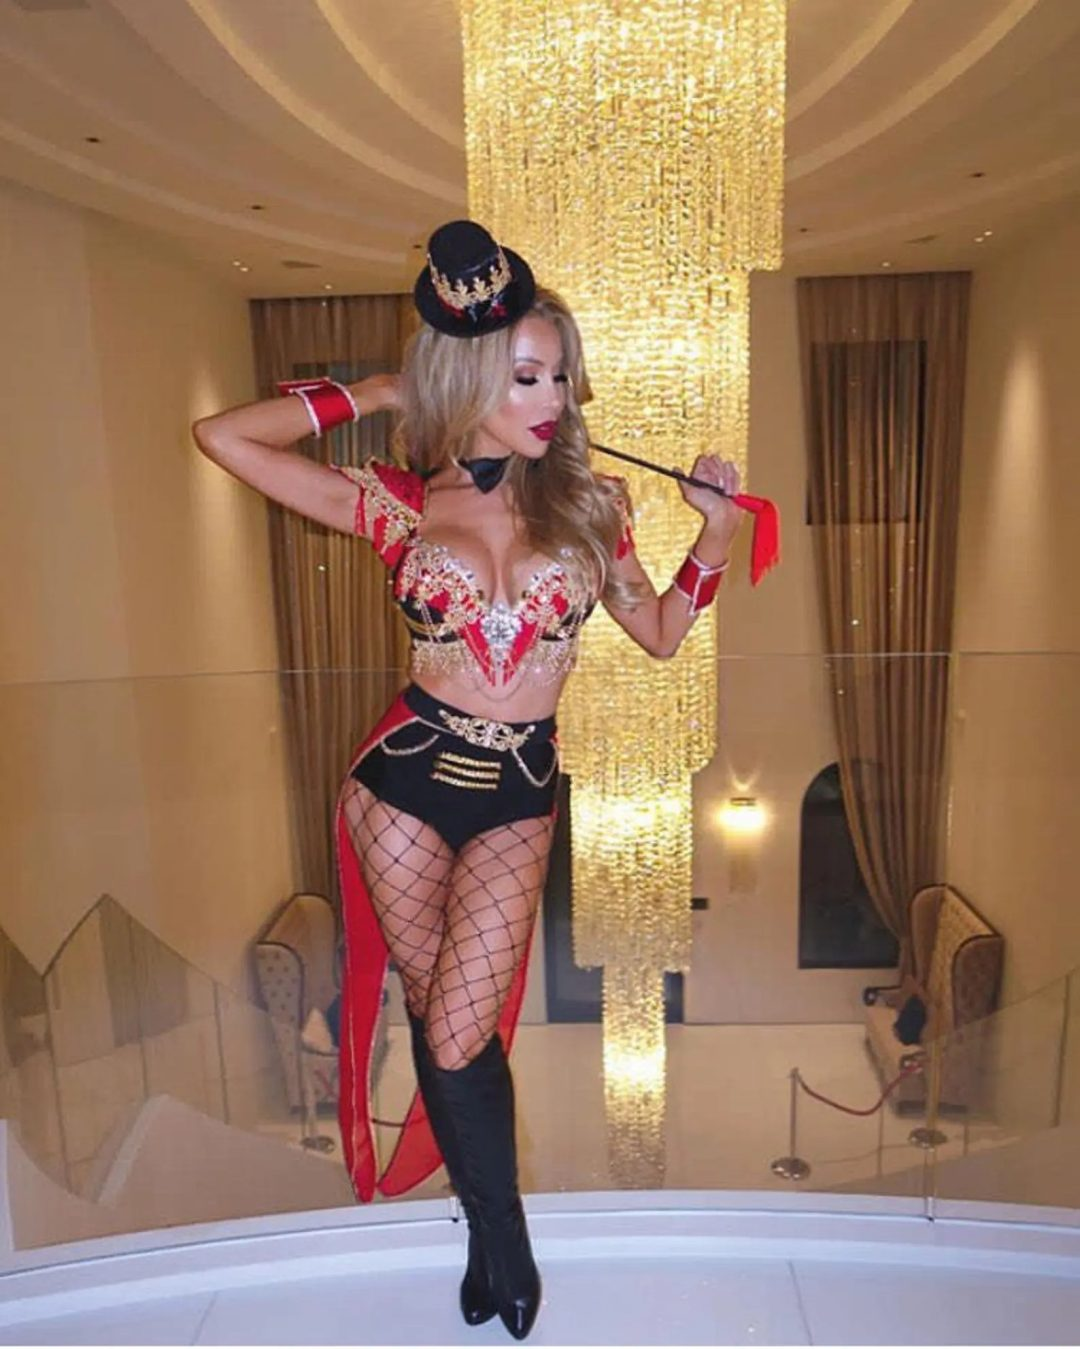 Ringleader with fishnets and hat